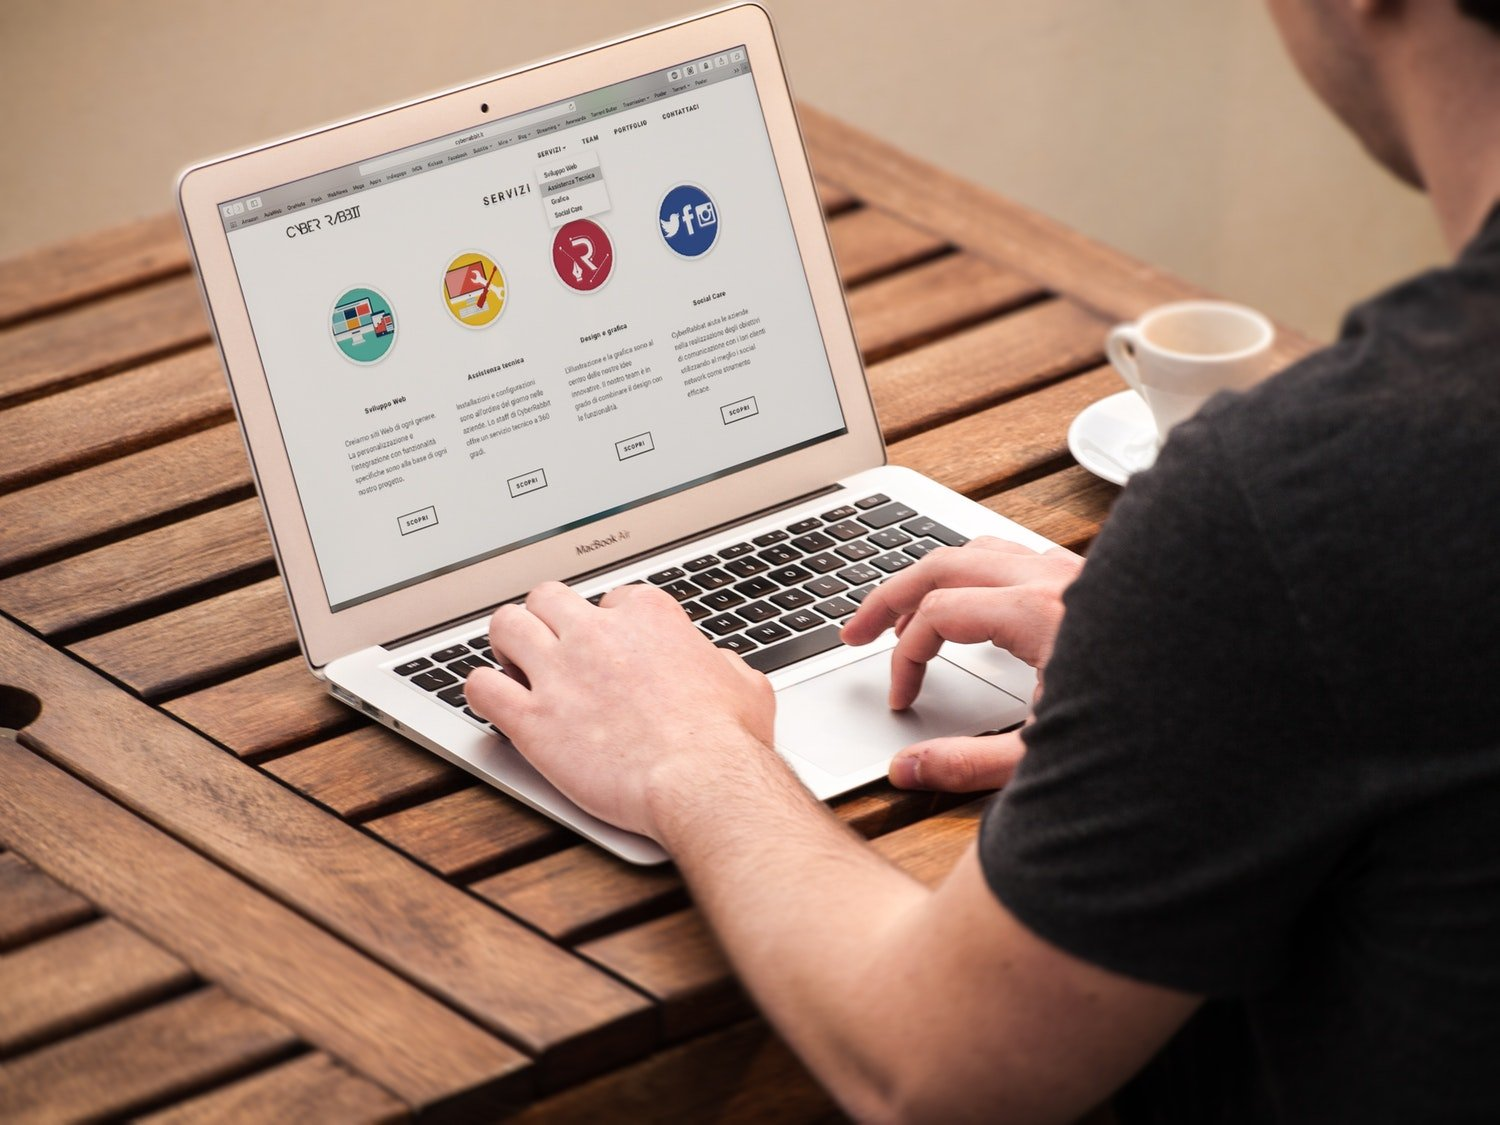 Try These 5 HubSpot CMS Features to Make the Most of Your New Website